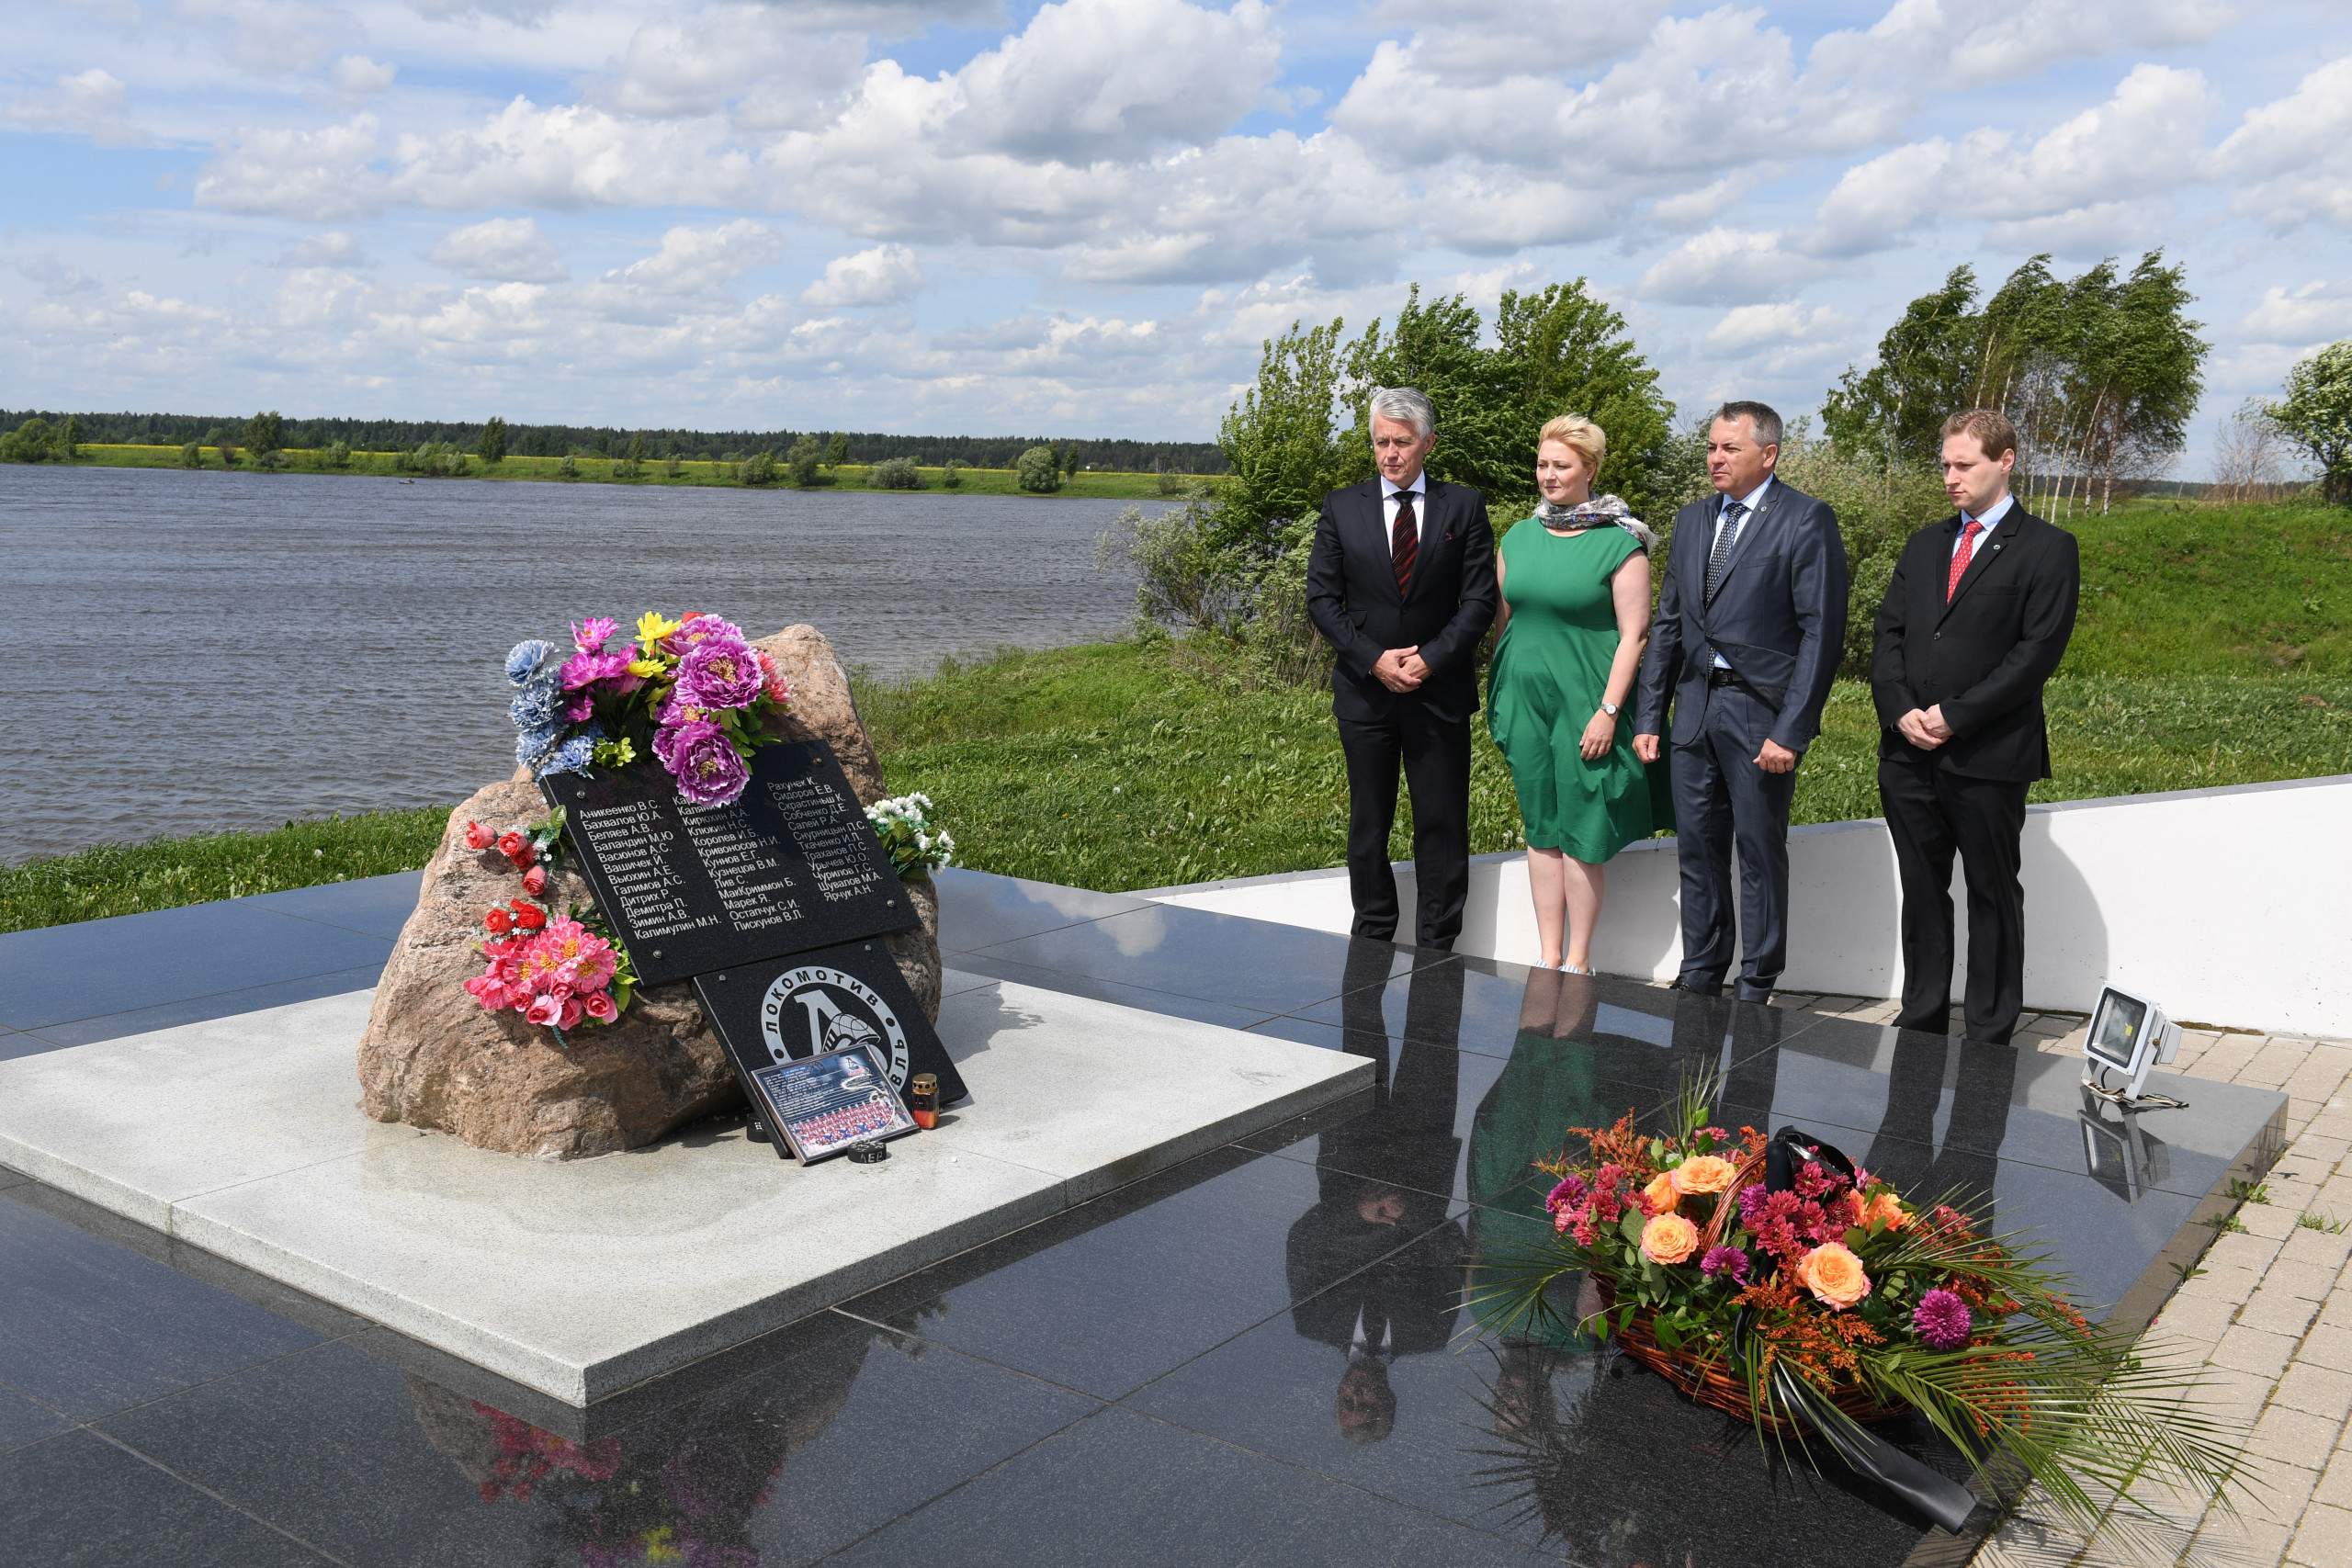 The IIB Delegation honored the memory of